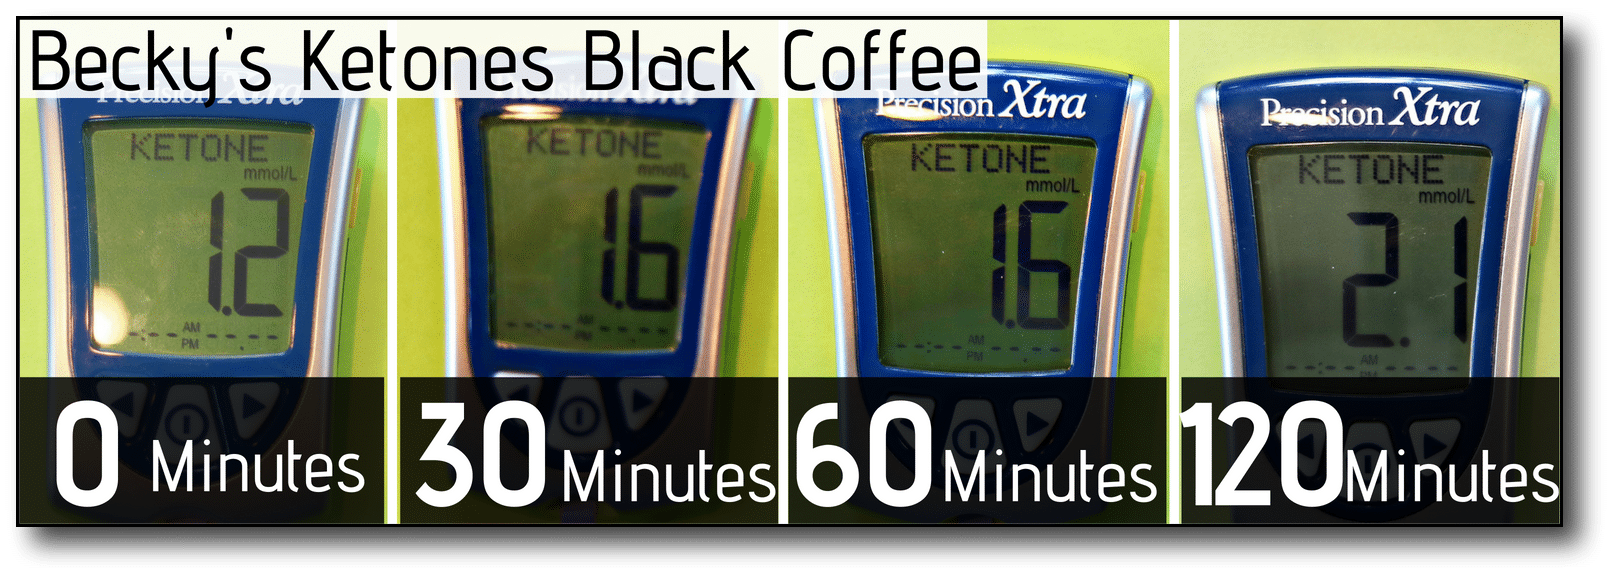 coffee and intermittent fasting- b ketone black coffee